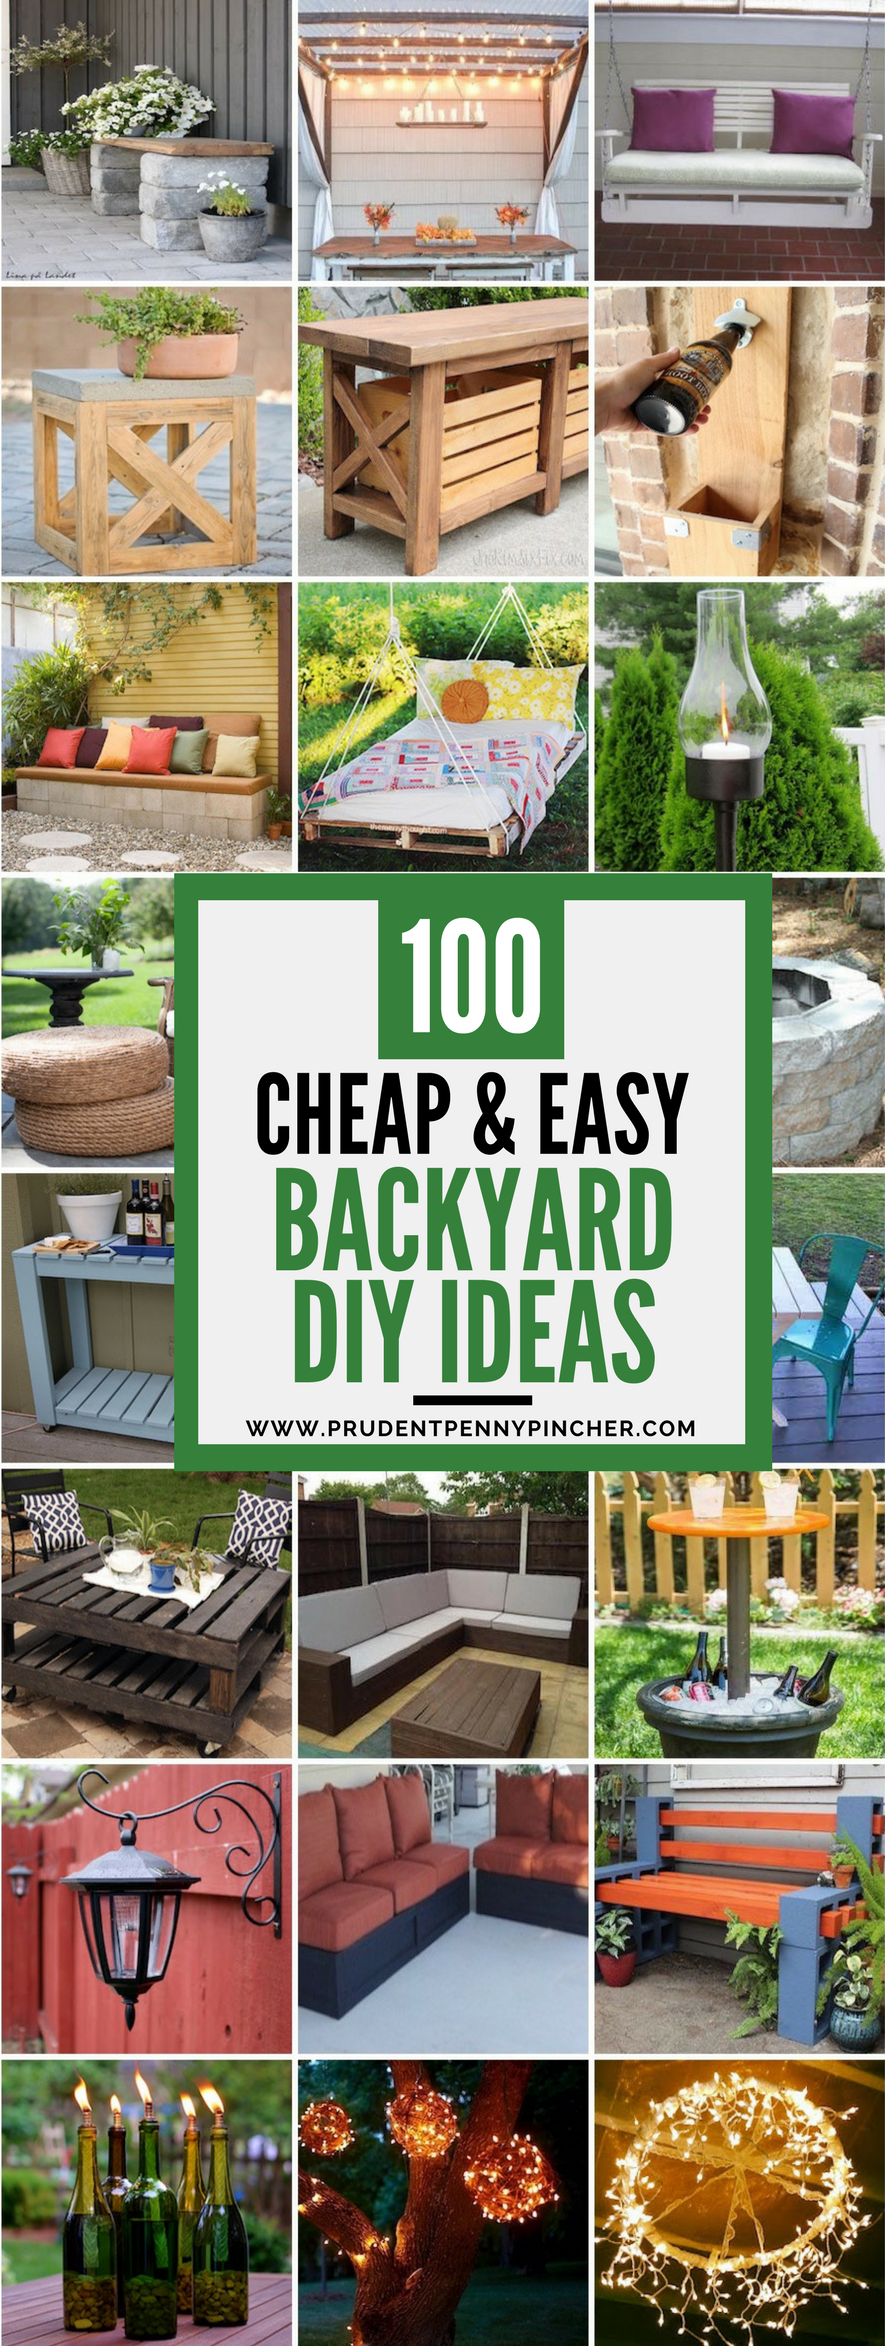 10 Easy Budget Friendly Ideas To Make A Dream Patio